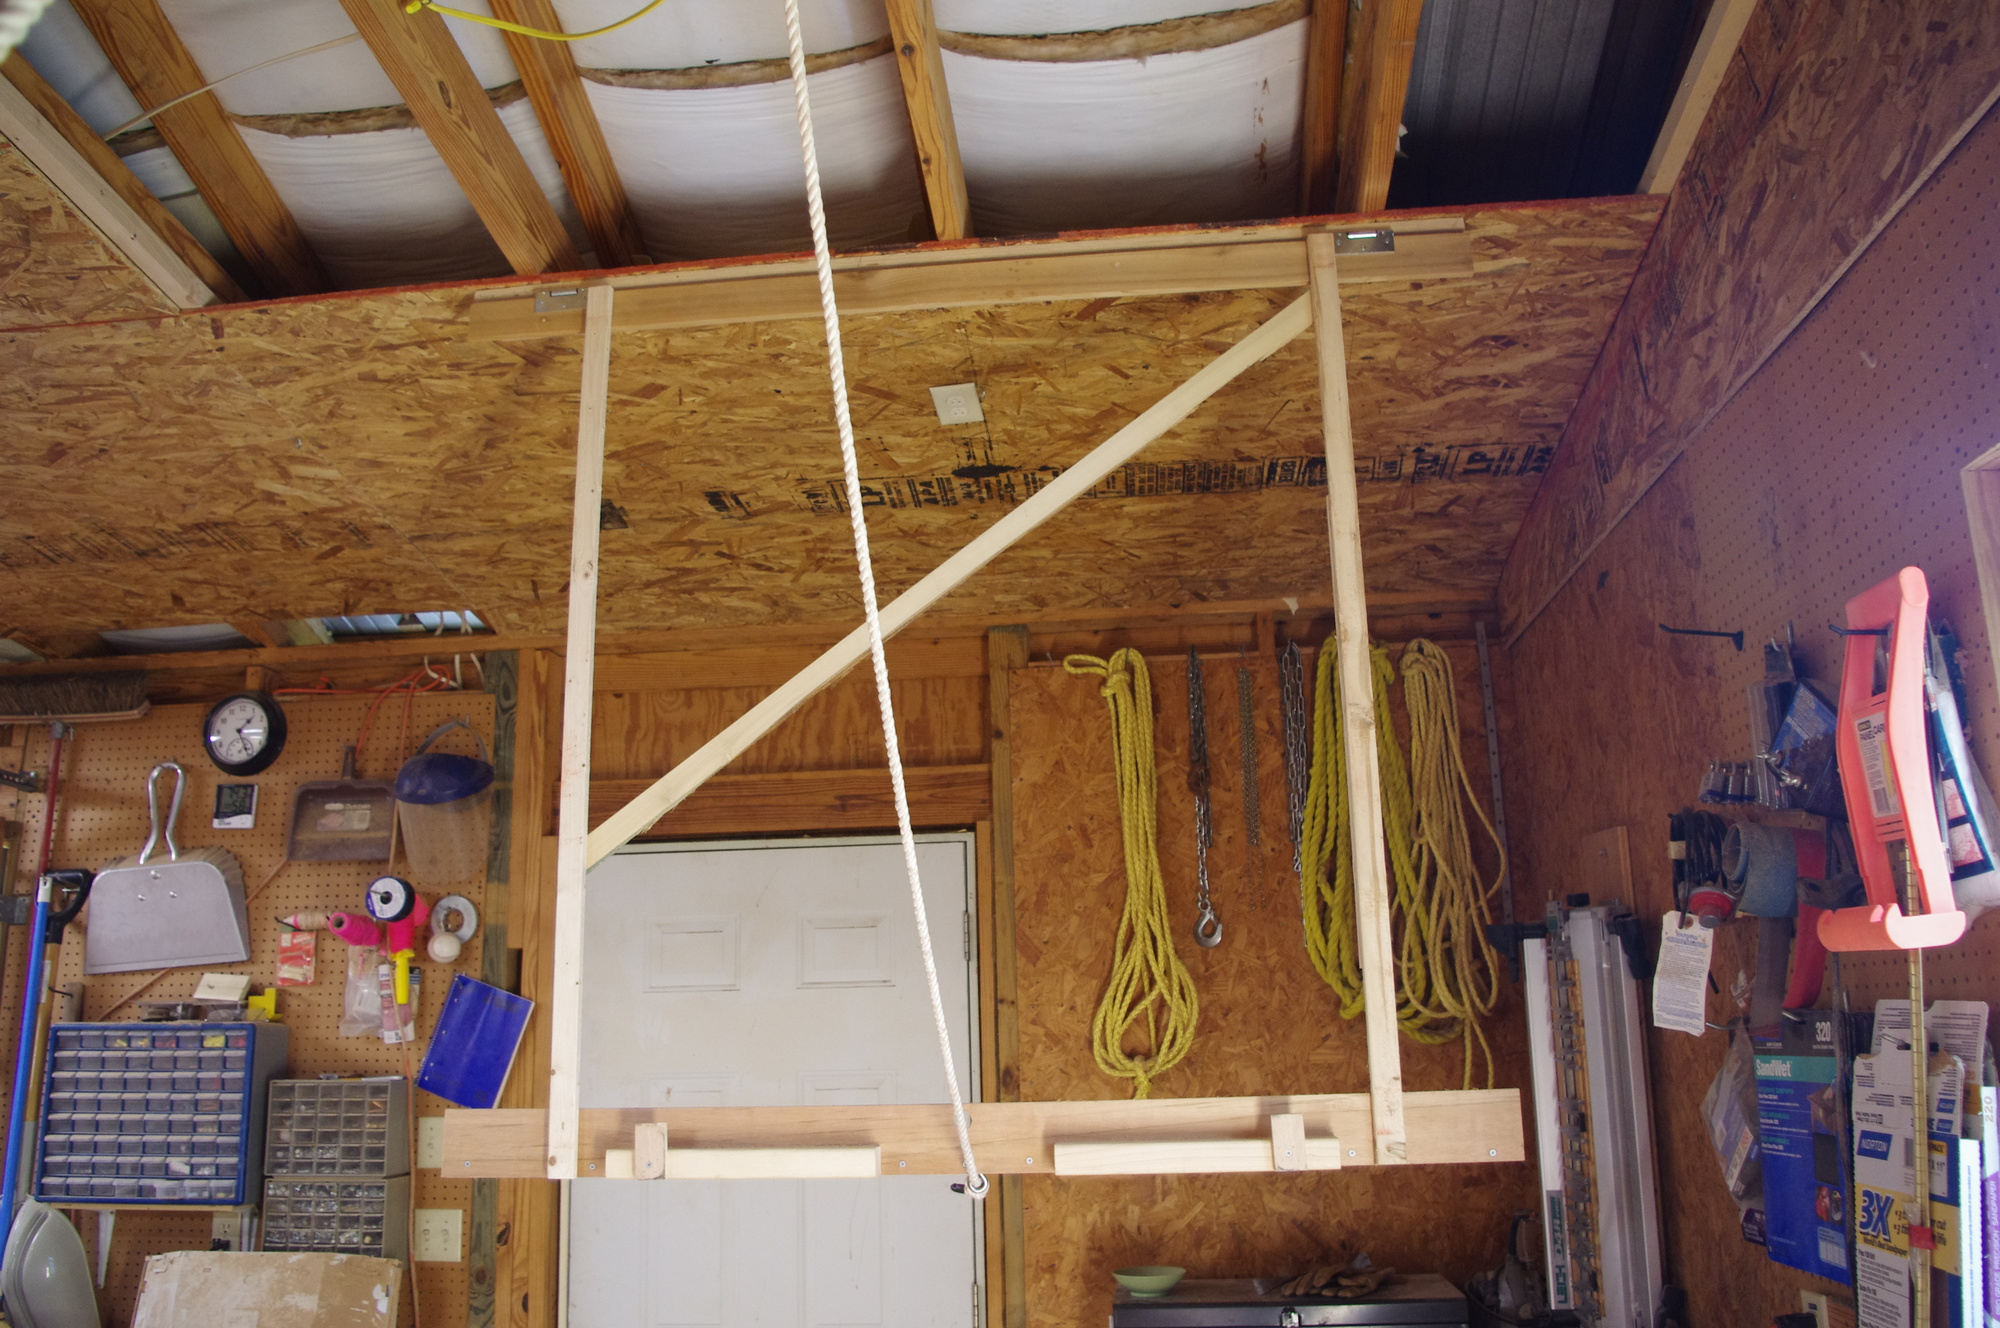 Jig To Install 4x8 Sheets To Ceiling